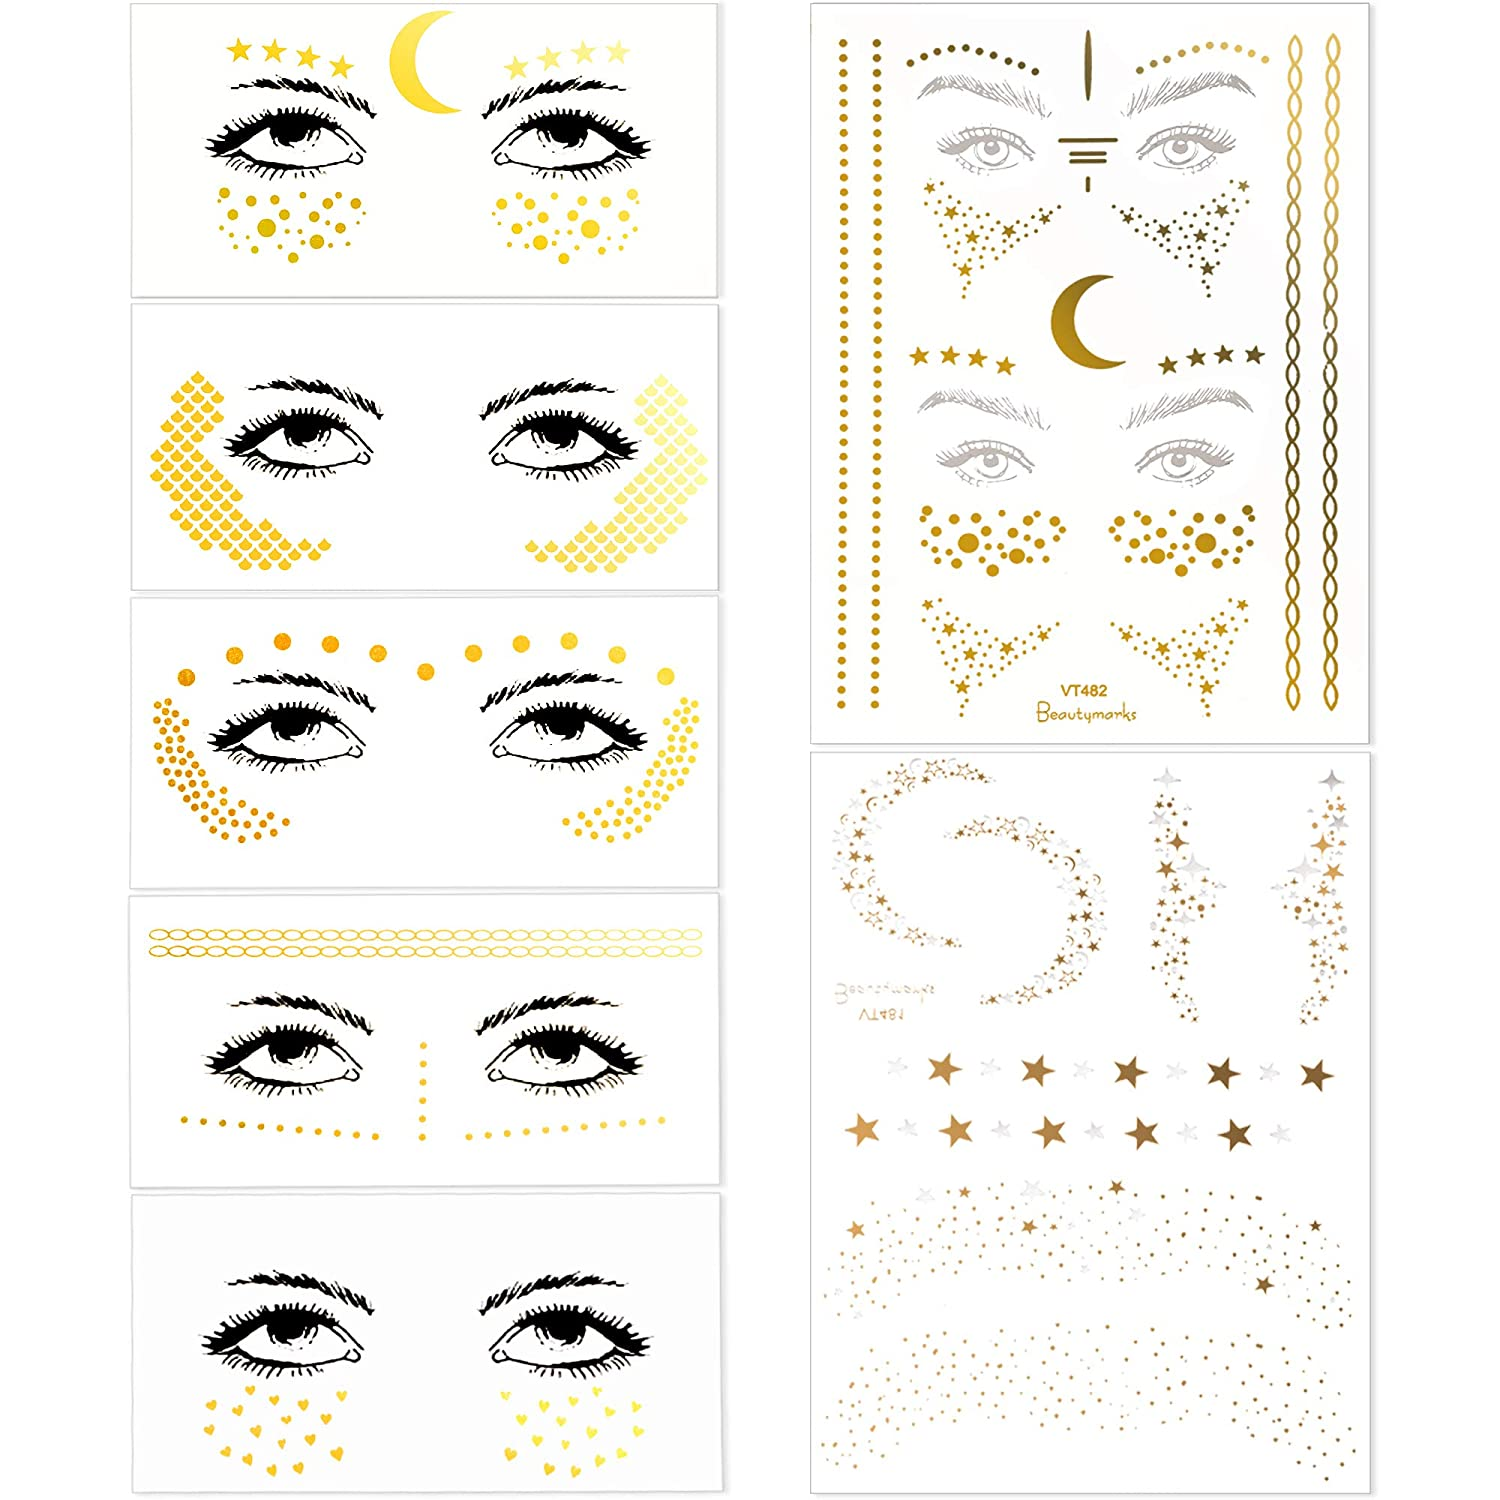 7 Sheets Face Tattoo Stickers Metallic Party Face Stickers Temporary Face Tattoos Gold Silver Glitter Face Decals for Women Girls Make Up (15 Styles)